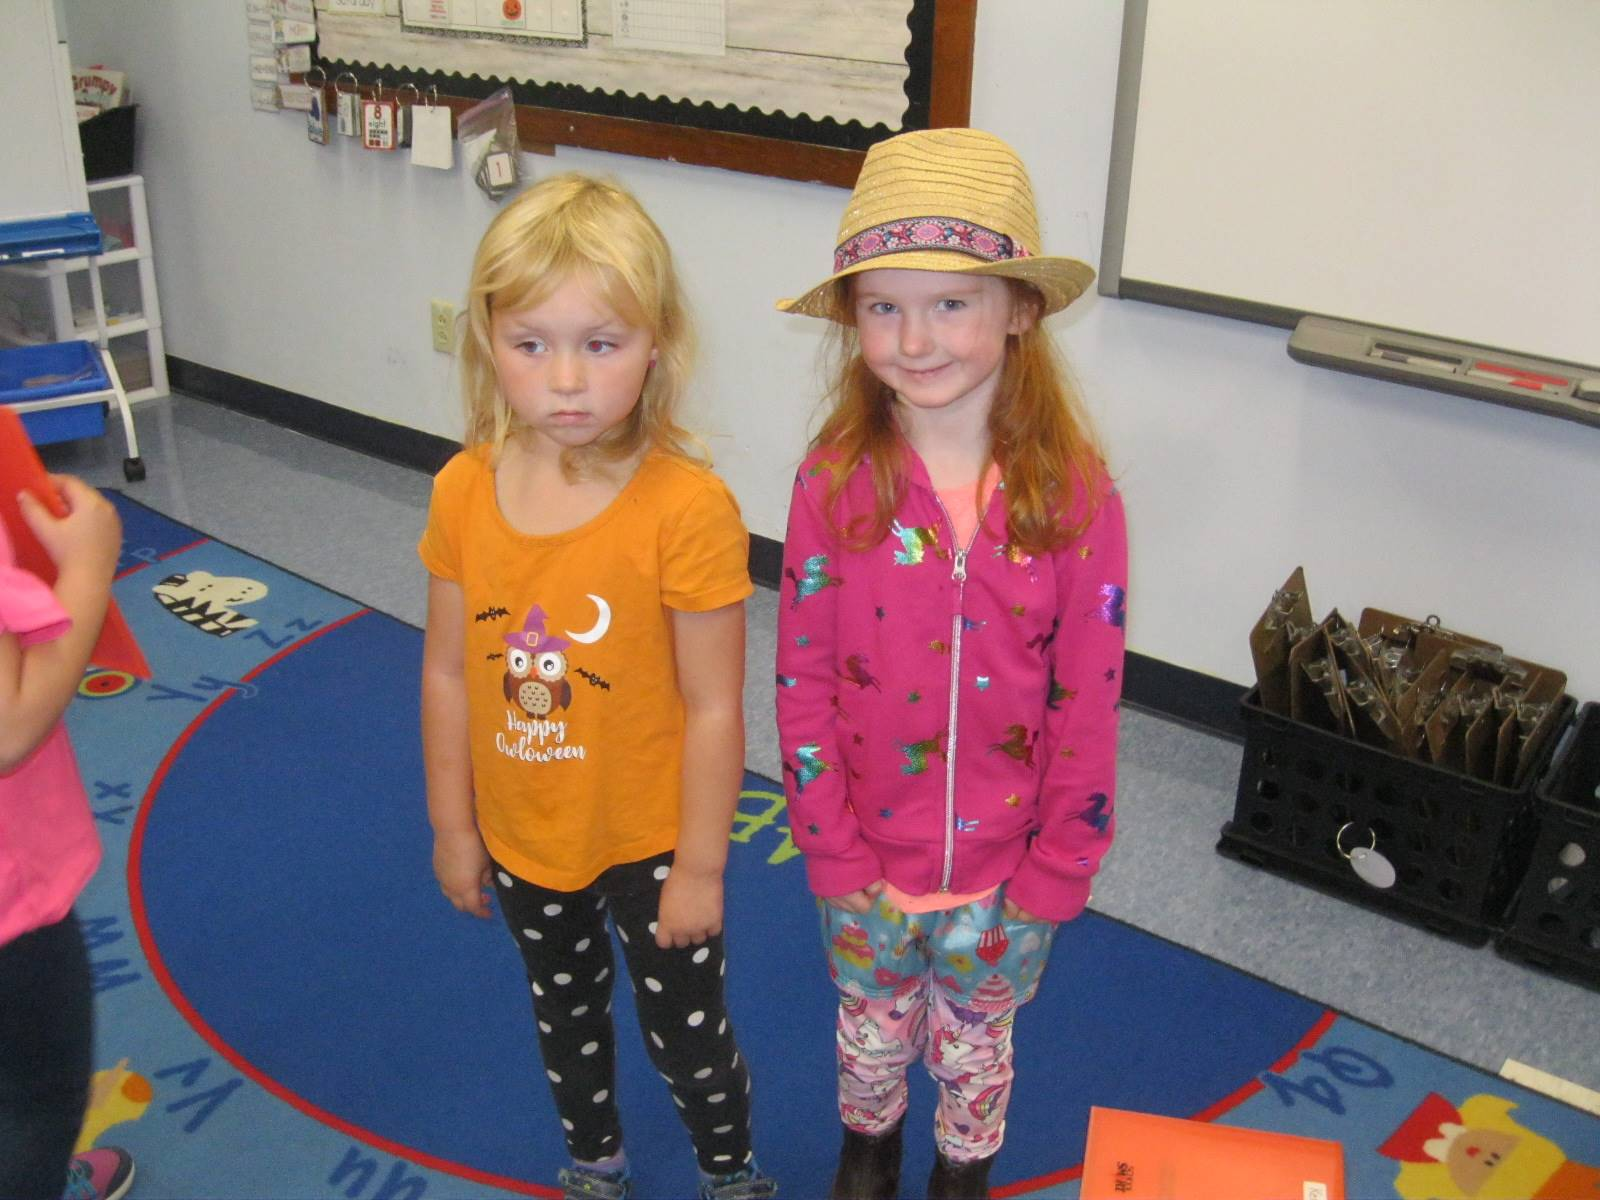 2 students with mixed up clothes.